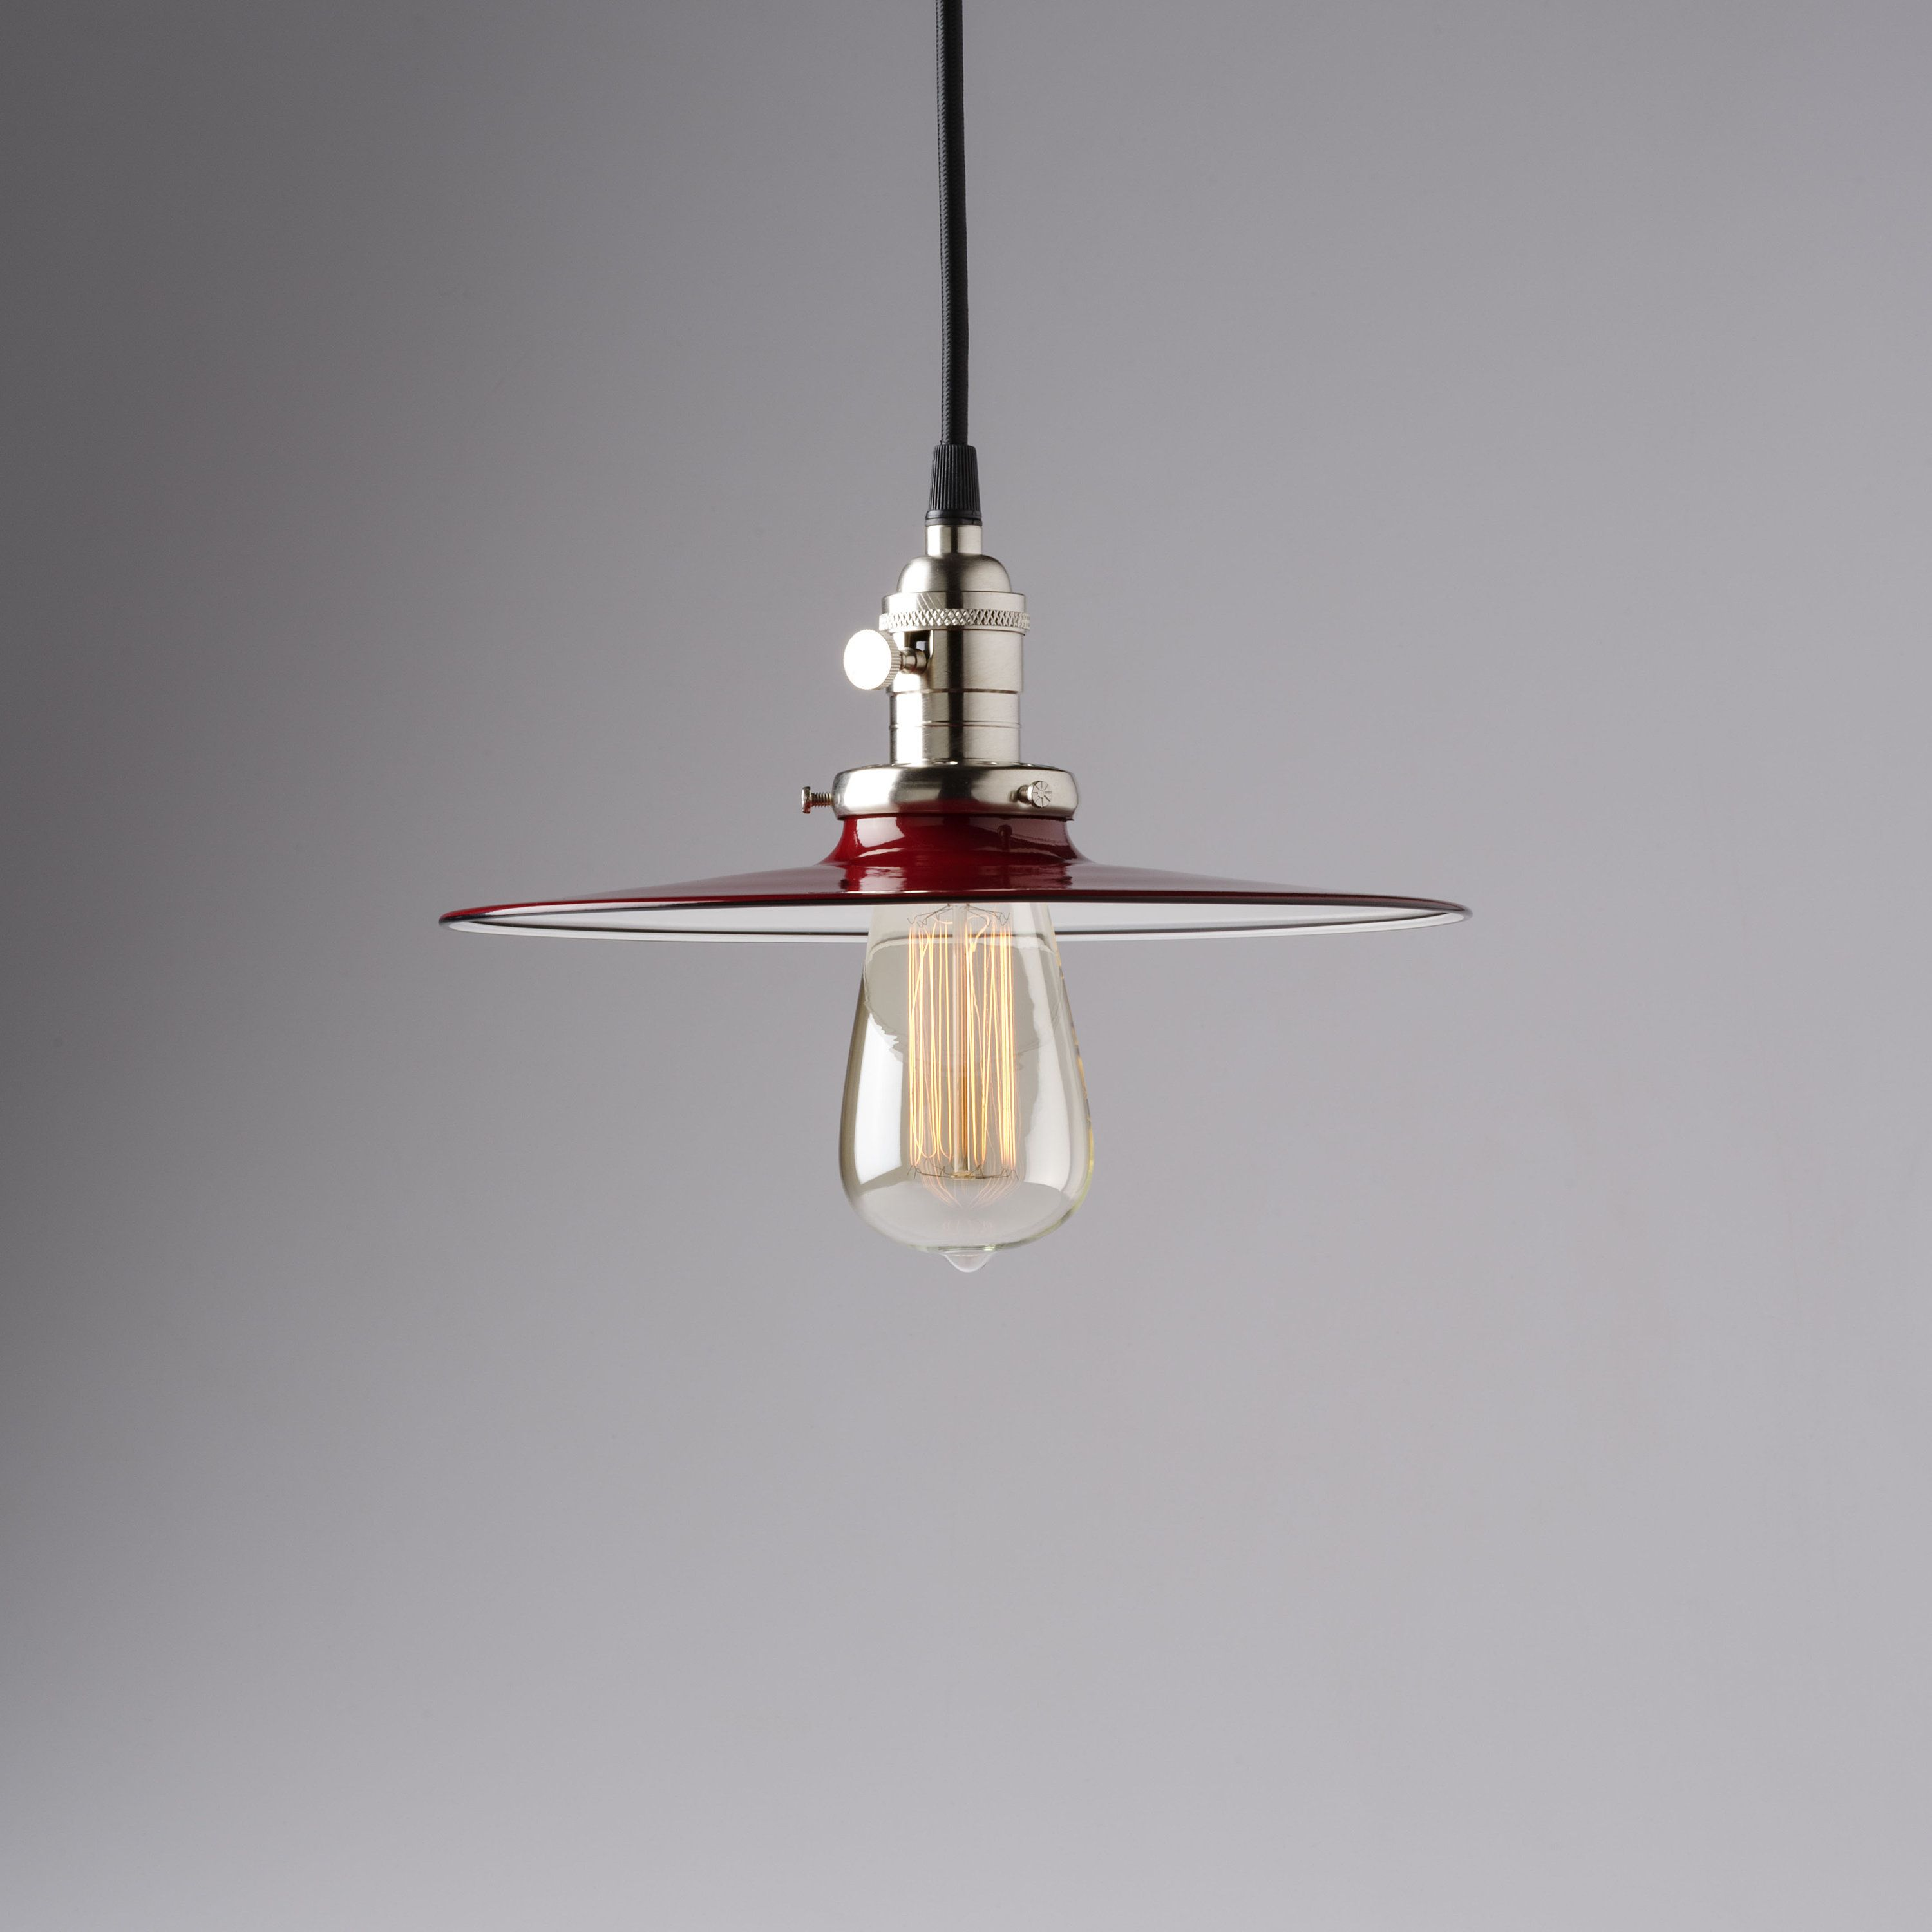 Industrial Pendant Light Fixture With Flat Red Metal Shade